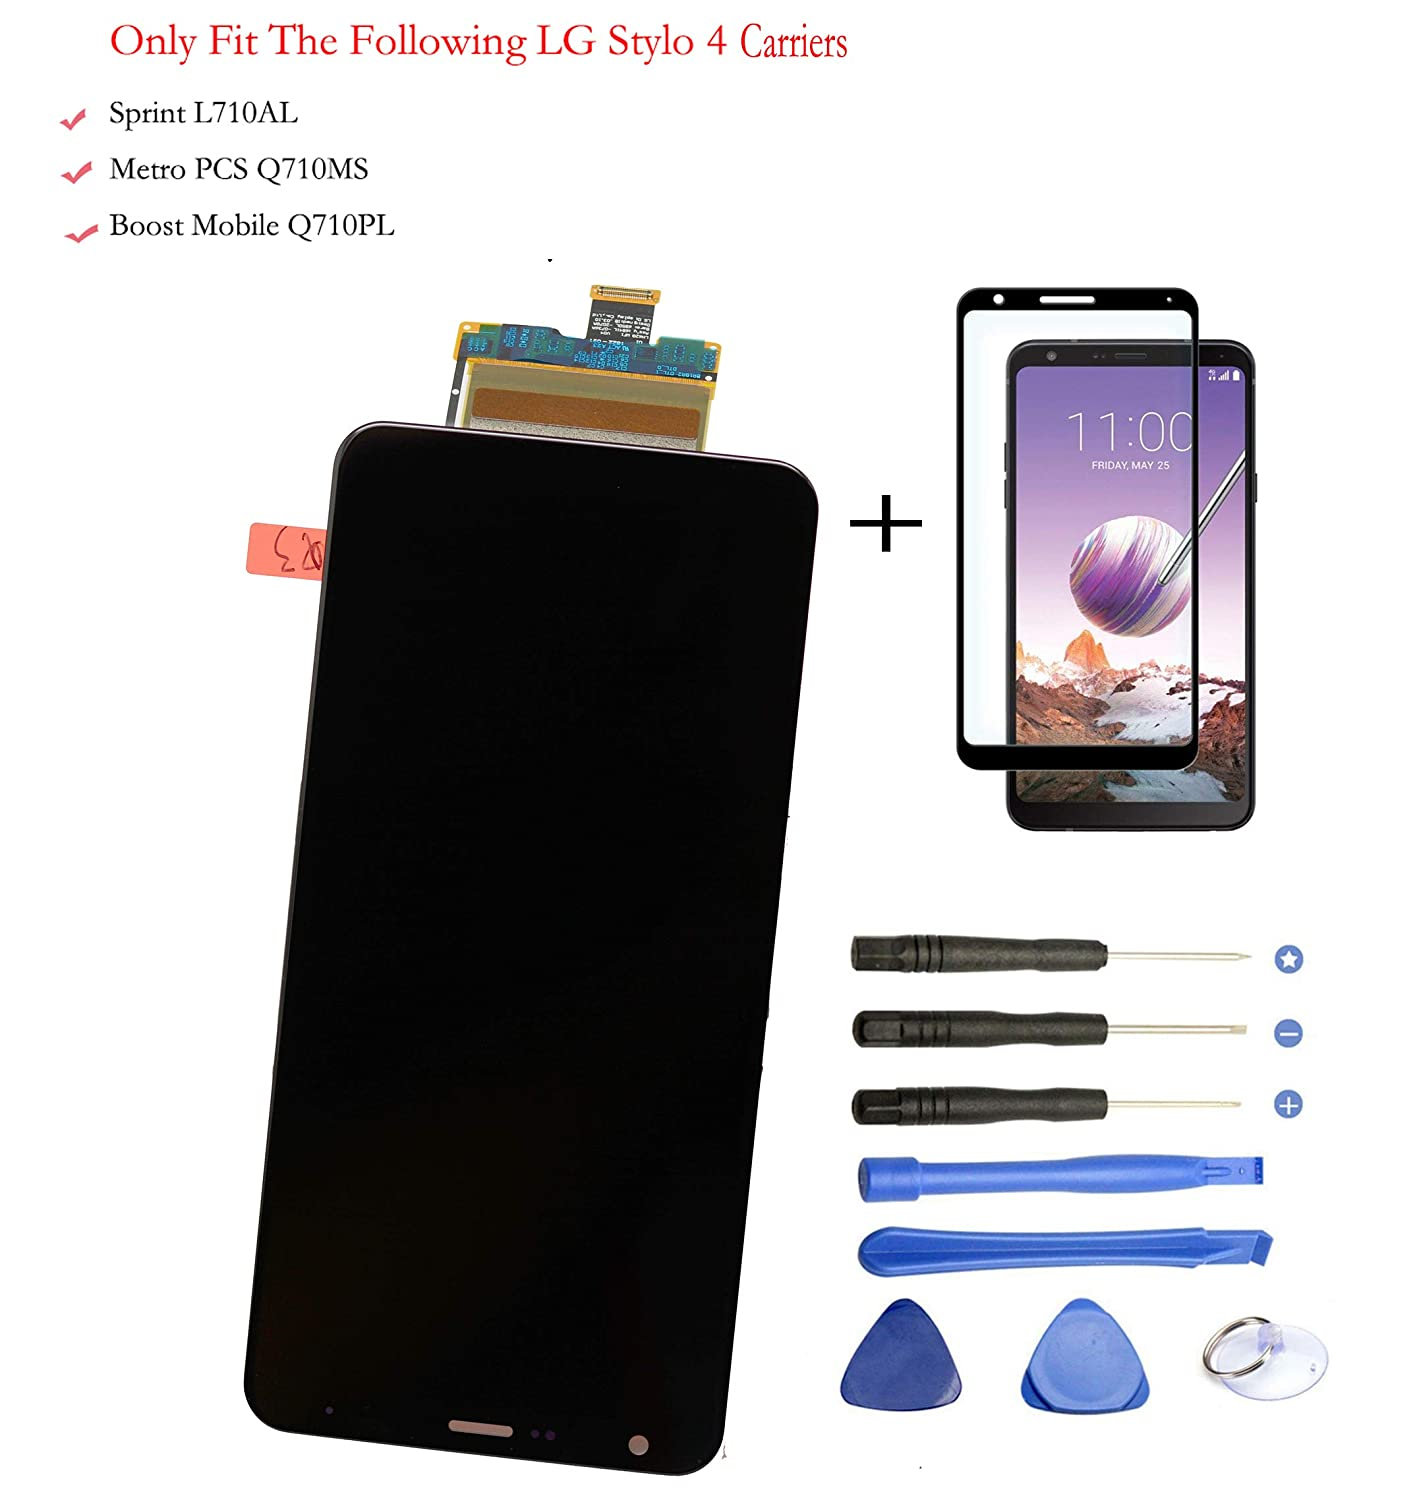 Eaglewireless LCD Touch Screen Digitizer Assembly Replacement for LG Stylo 4 Q710AL for Sprint and Q710MS for MetroPCS+Glass Protector